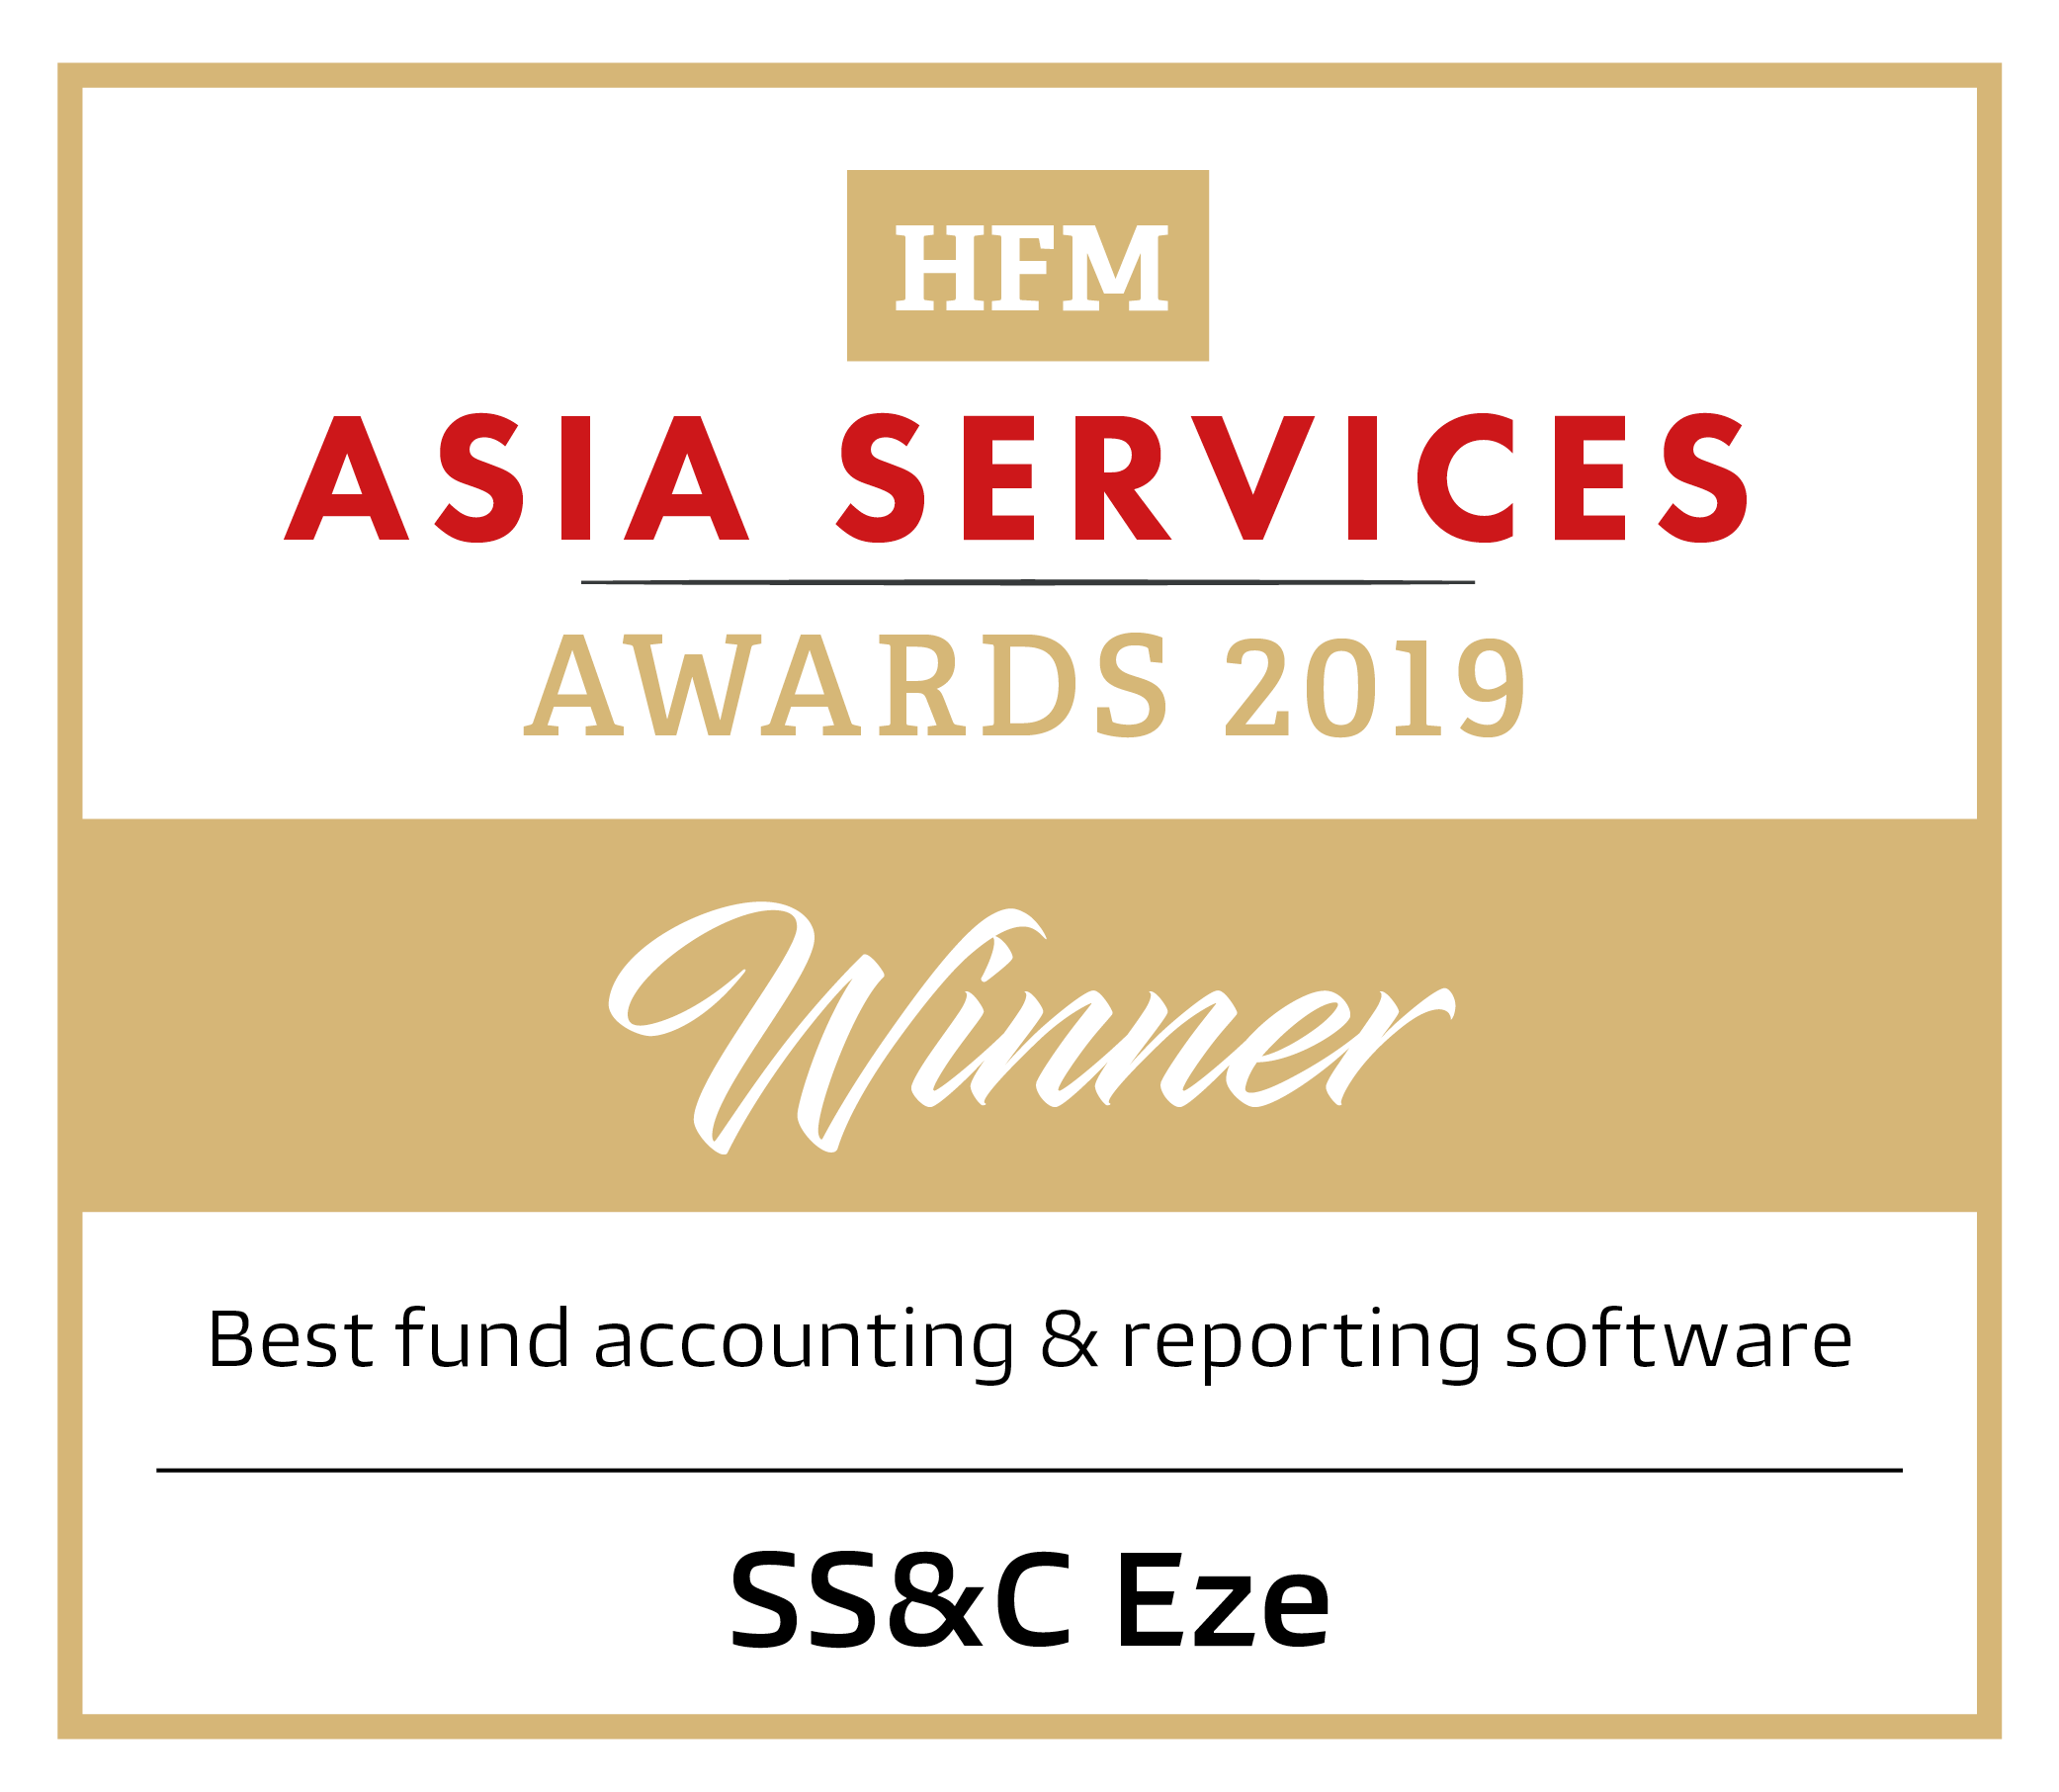 Best Fund Accounting and Reporting Software - HFM Asia Services Awards 2019